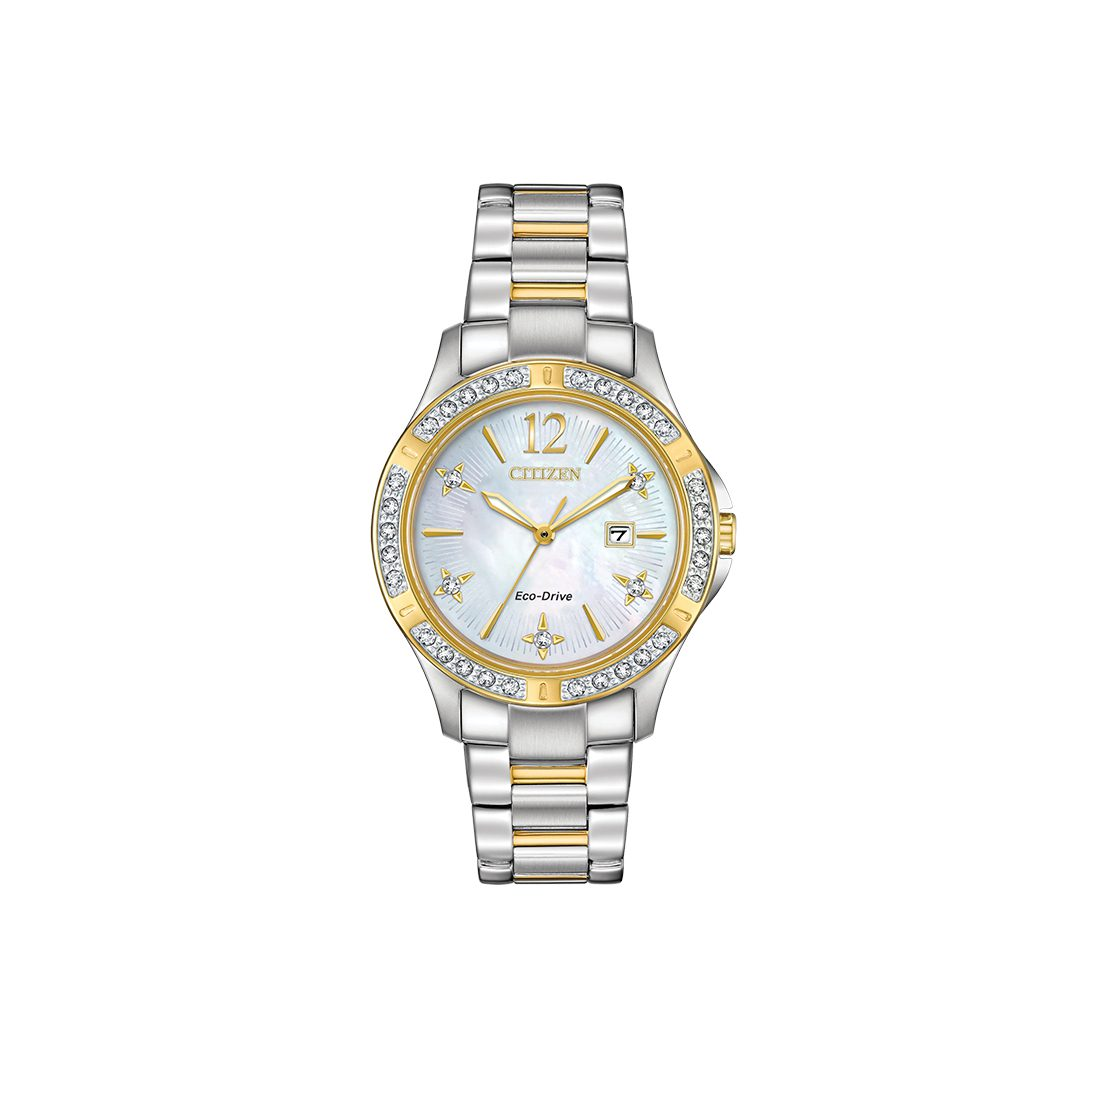 Stainless steel two-tone women's Citizen Watch with lithium ion battery and diamond accents